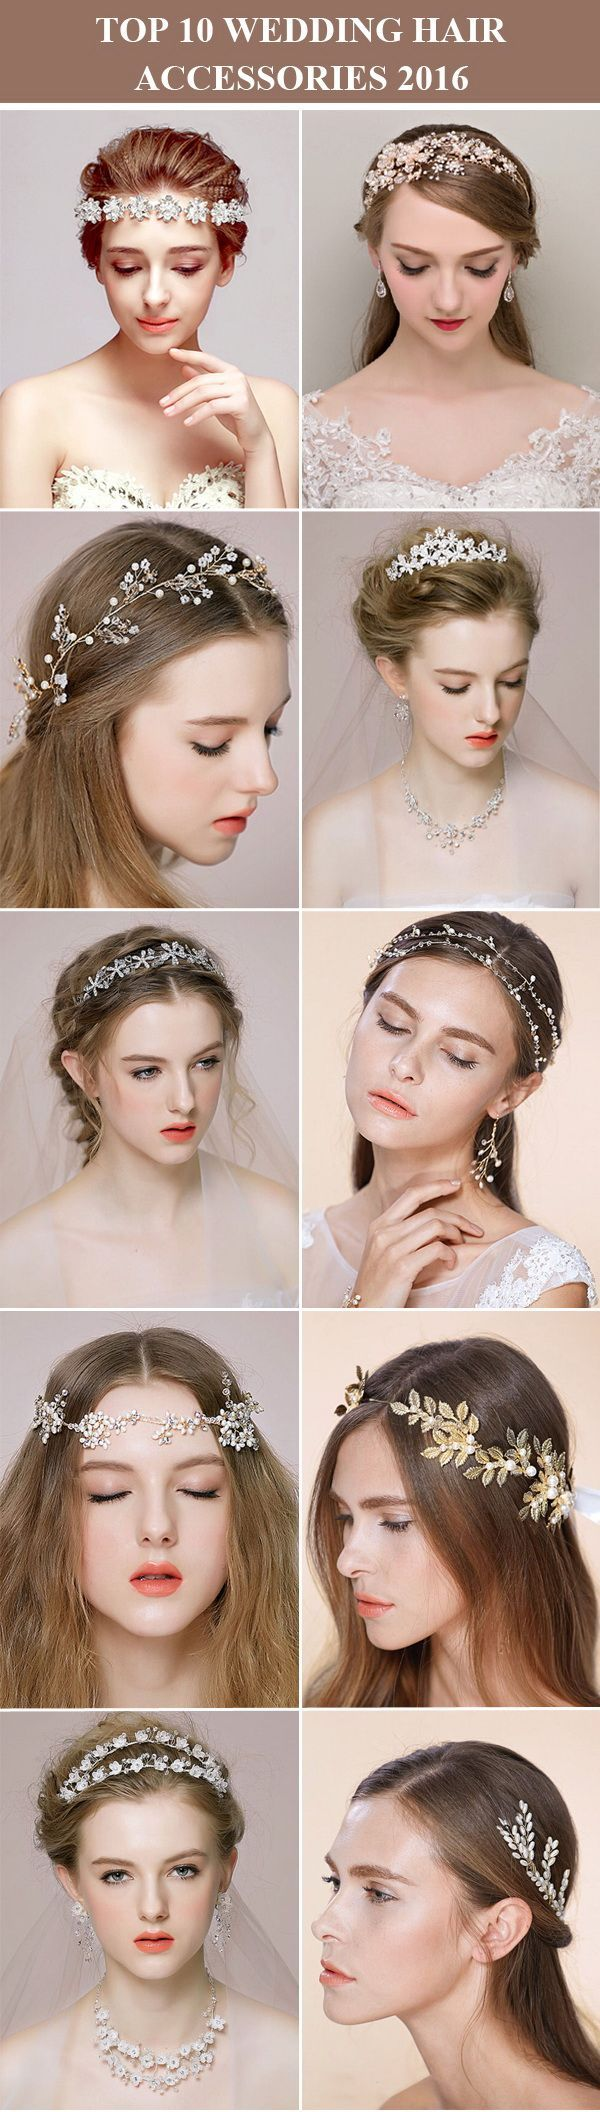 For the most special day of your life, getting your hair right is super important. Here are 10 stunning styles that'll guarantee you look gorgeous on the day.